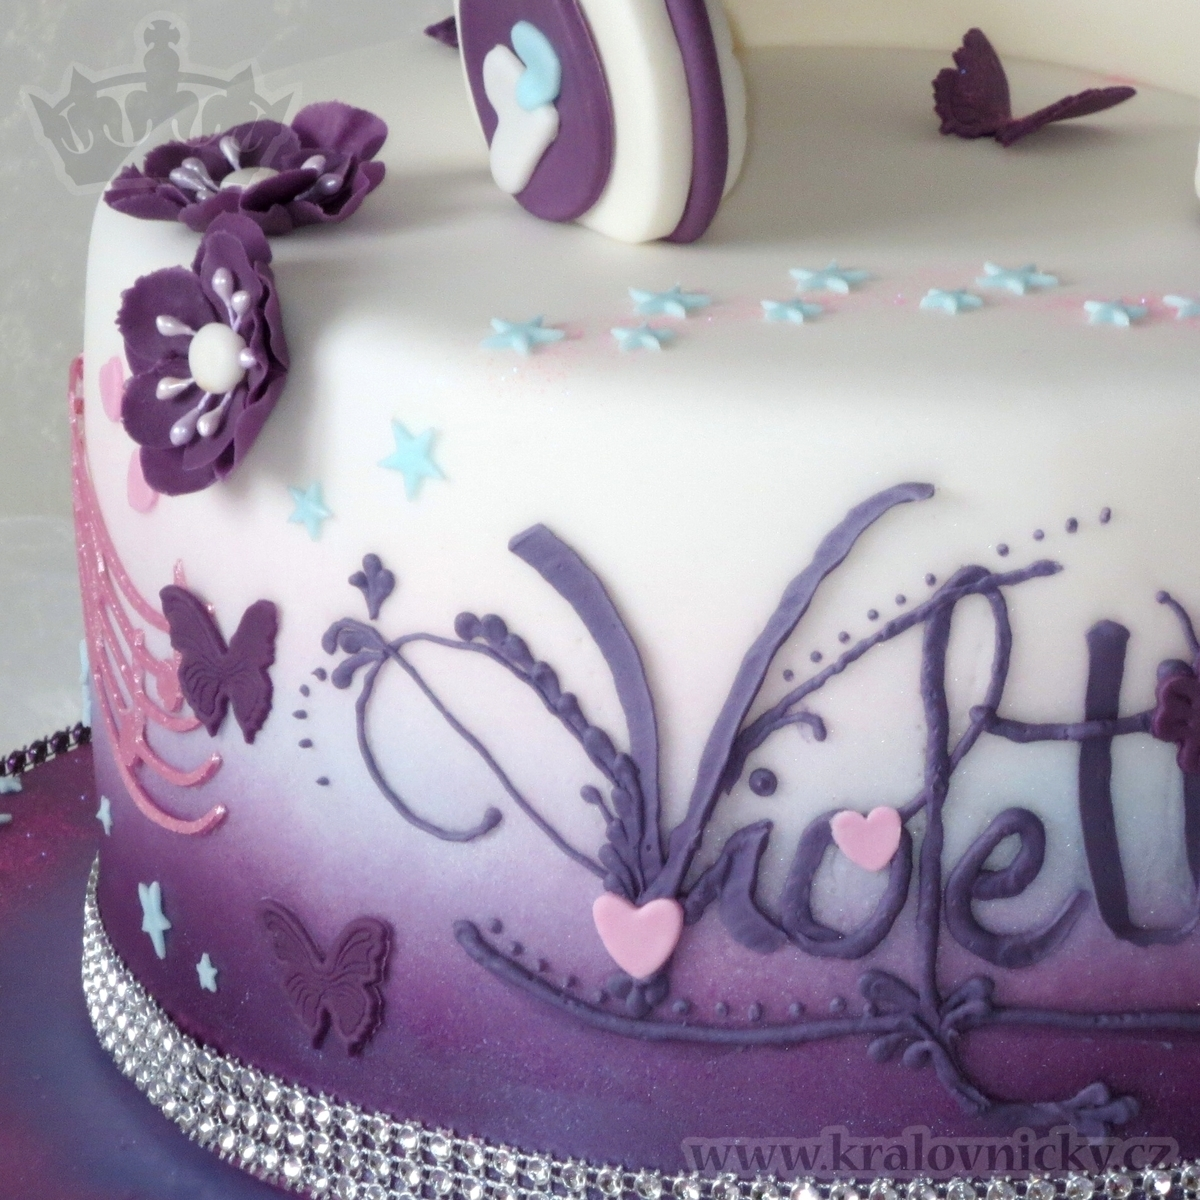 Birthday Cake For Young Girl Who Loves Violetta Serie Fondant Covered Colored By Airbrush And Decorated With Royal Icing